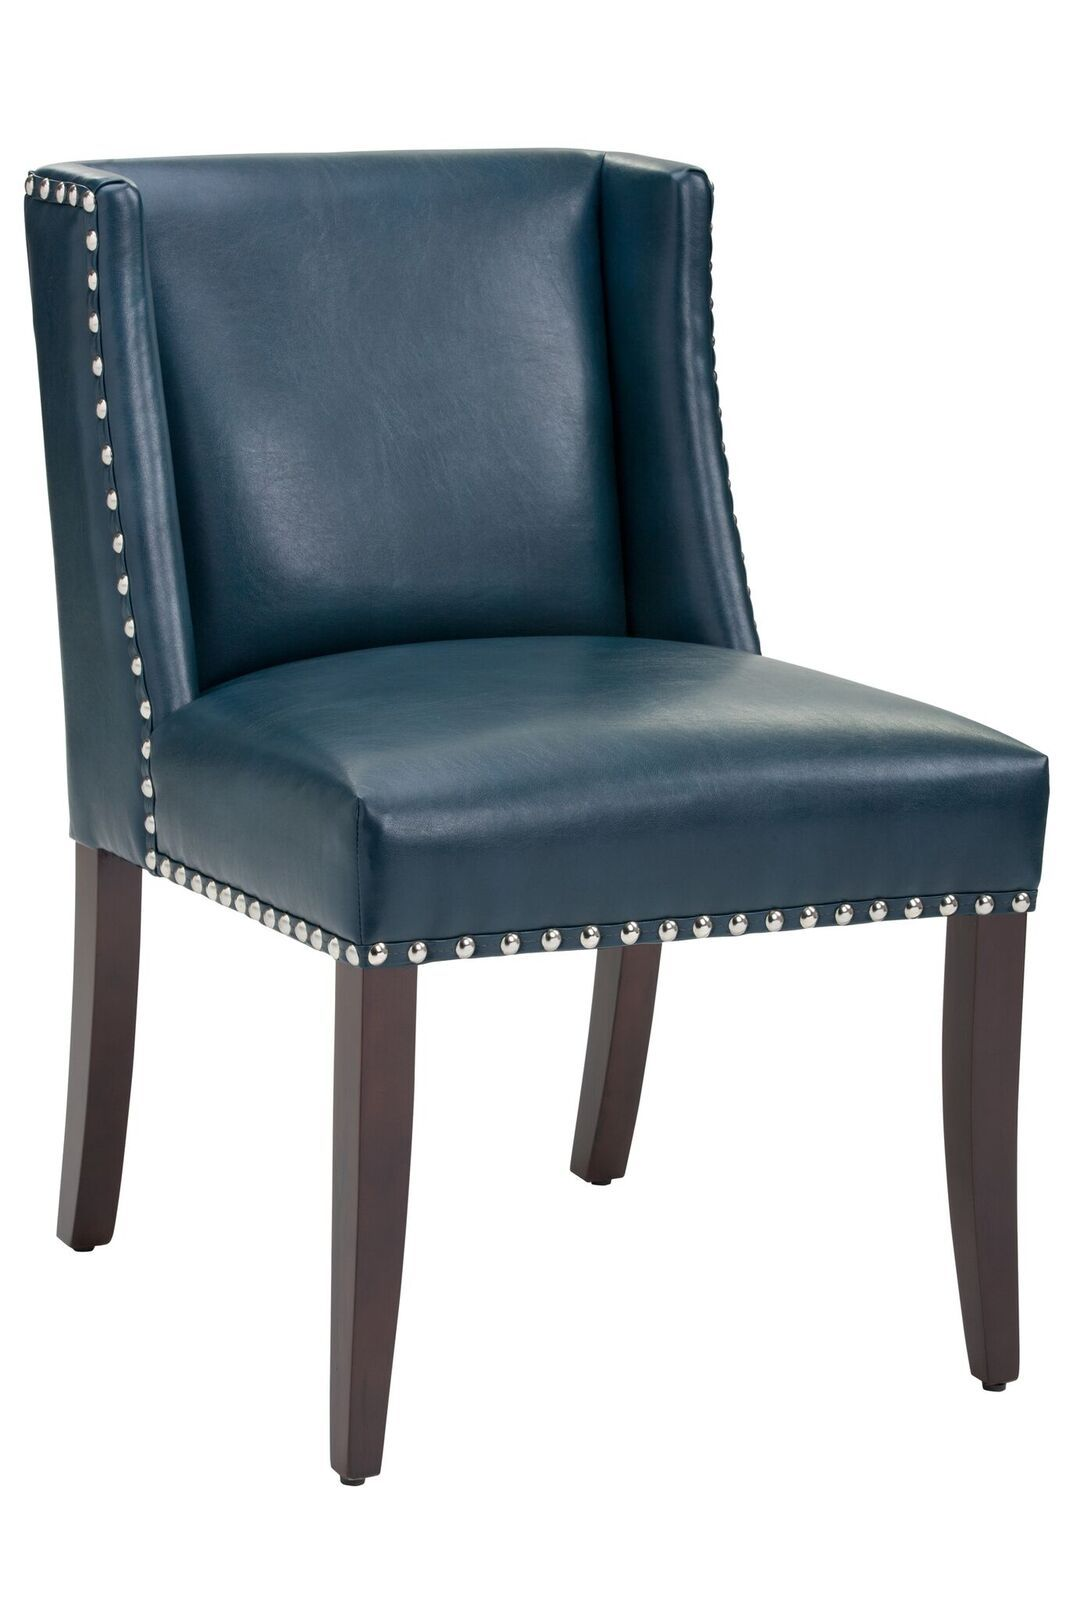 Marlin Blue Leather Dining Chair Set Of 2 By Sunpan Modern 100300 Leather Dining Chairs Leather Dining Dining Chairs